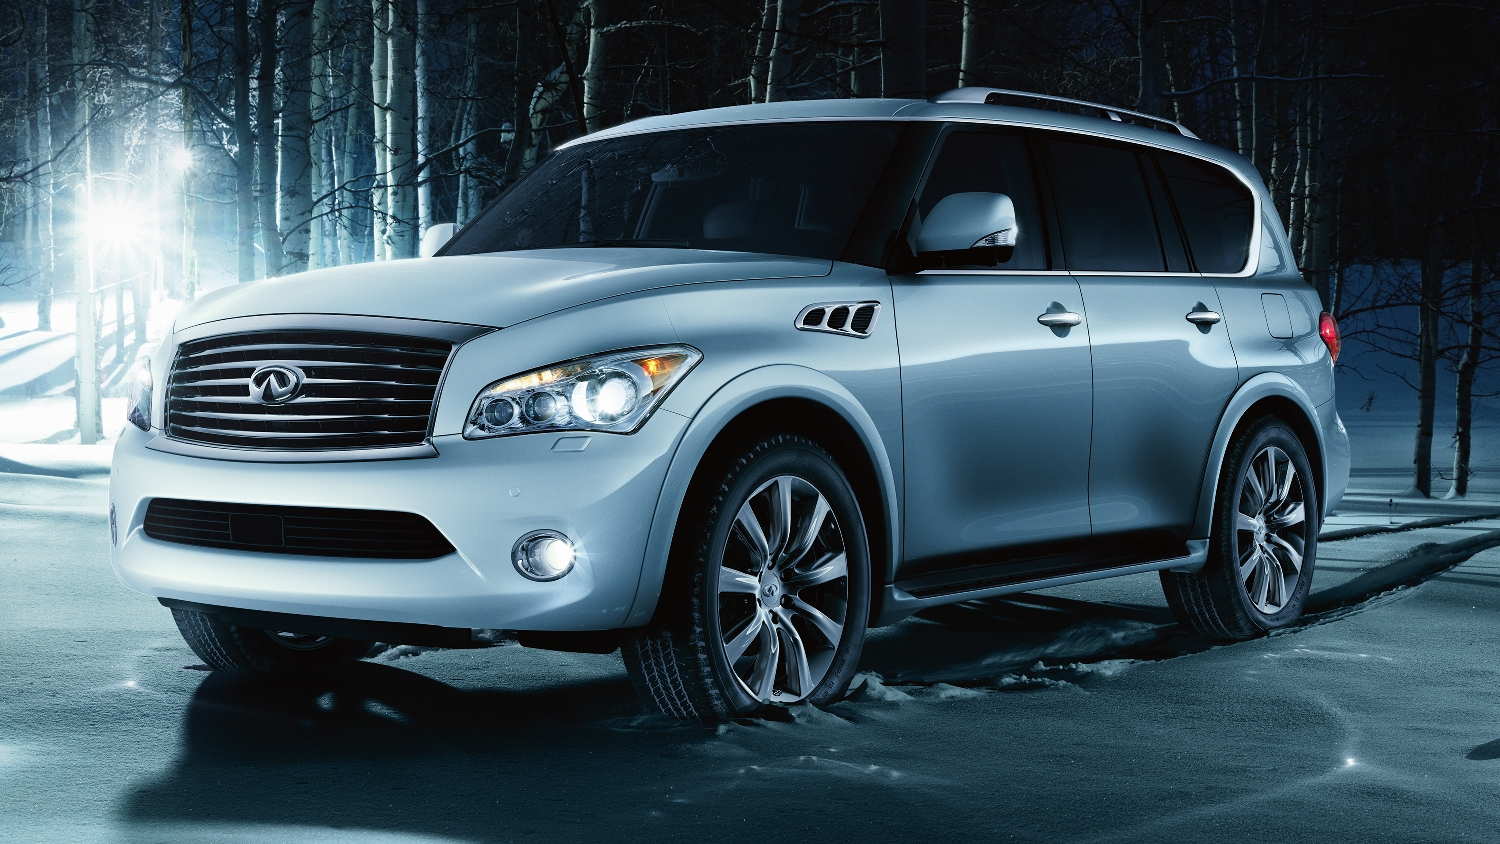 2014 infiniti qx80 image 13. Black Bedroom Furniture Sets. Home Design Ideas